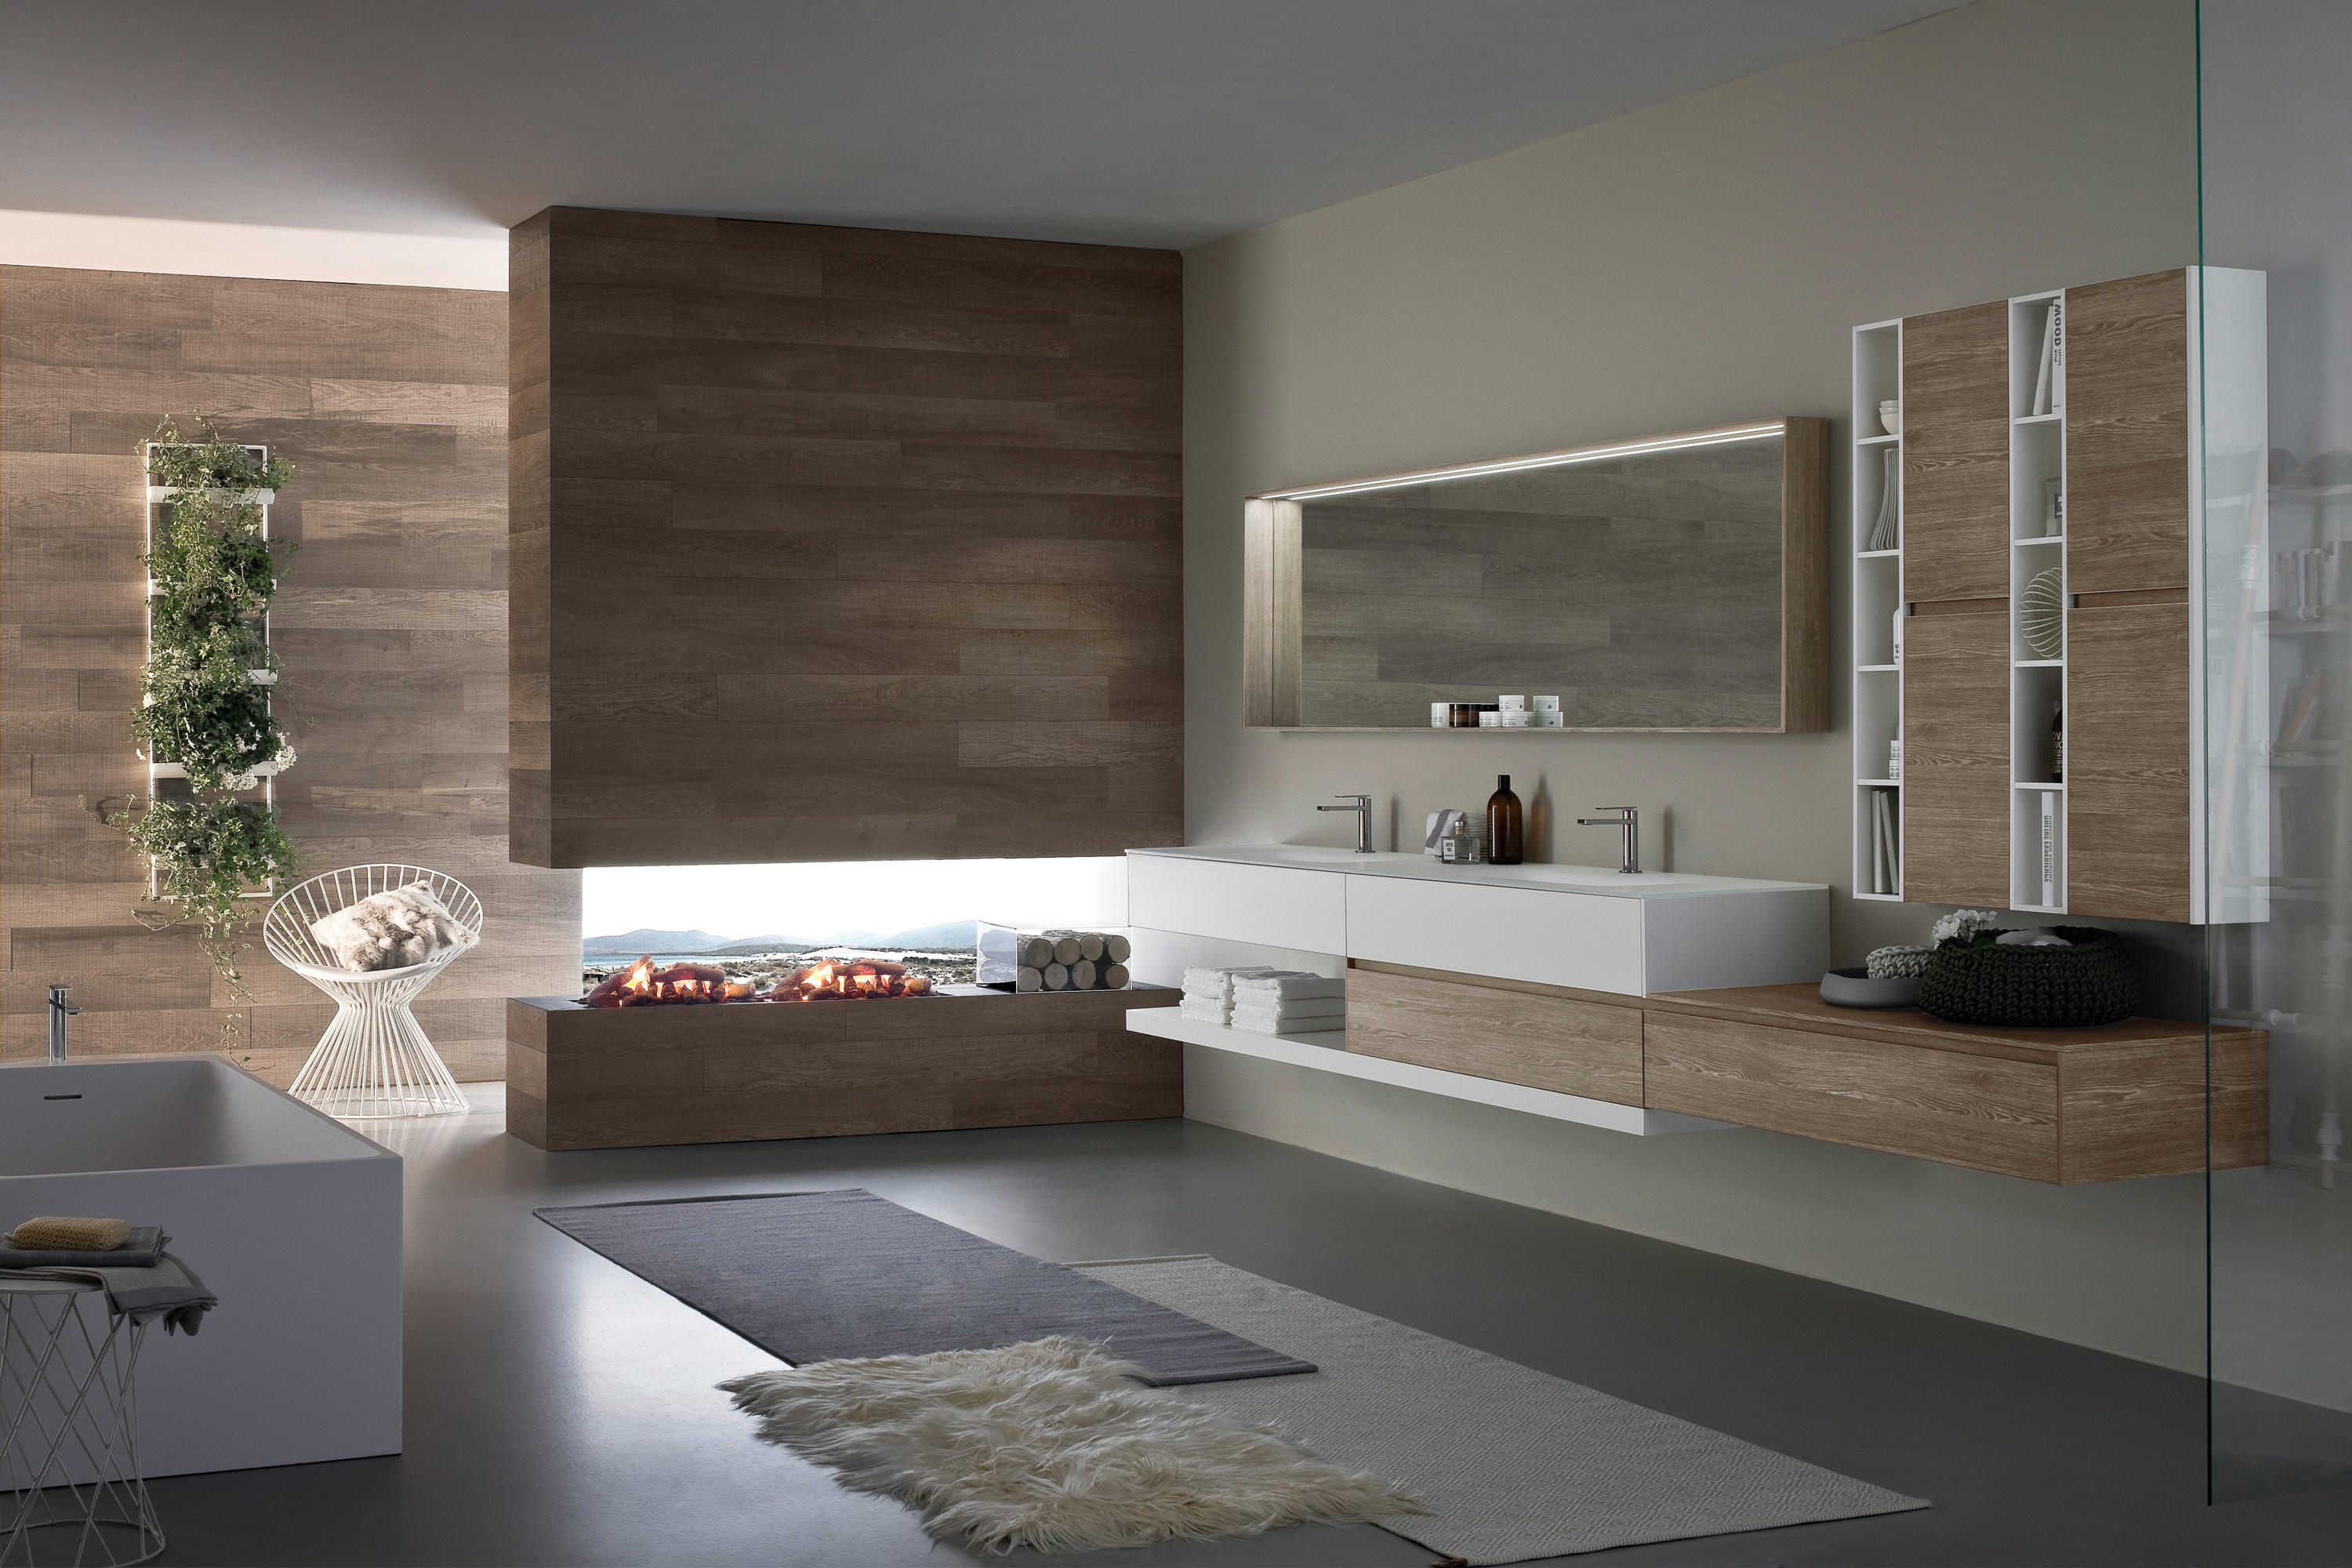 Idea Modern Italian Bathrooms Now In Palm Springs Tredi Interiors Modern Italian Design Kitchens And Furniture Palm Springs